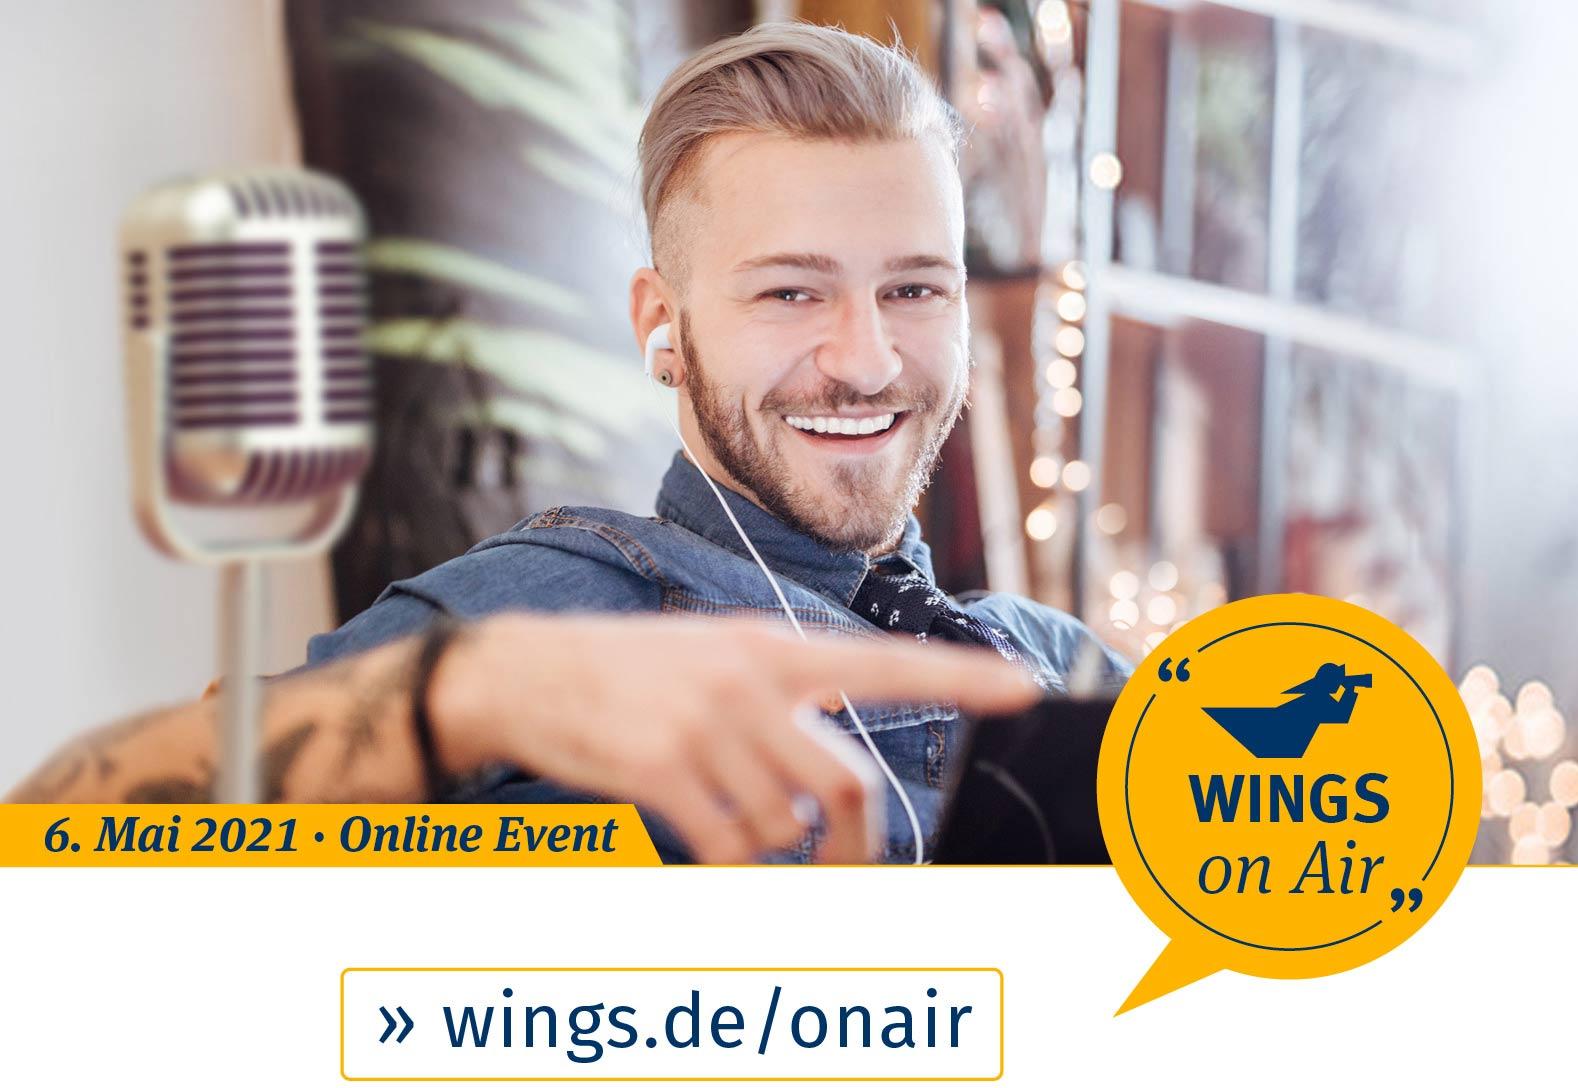 WINGS on Air am 6. Mai